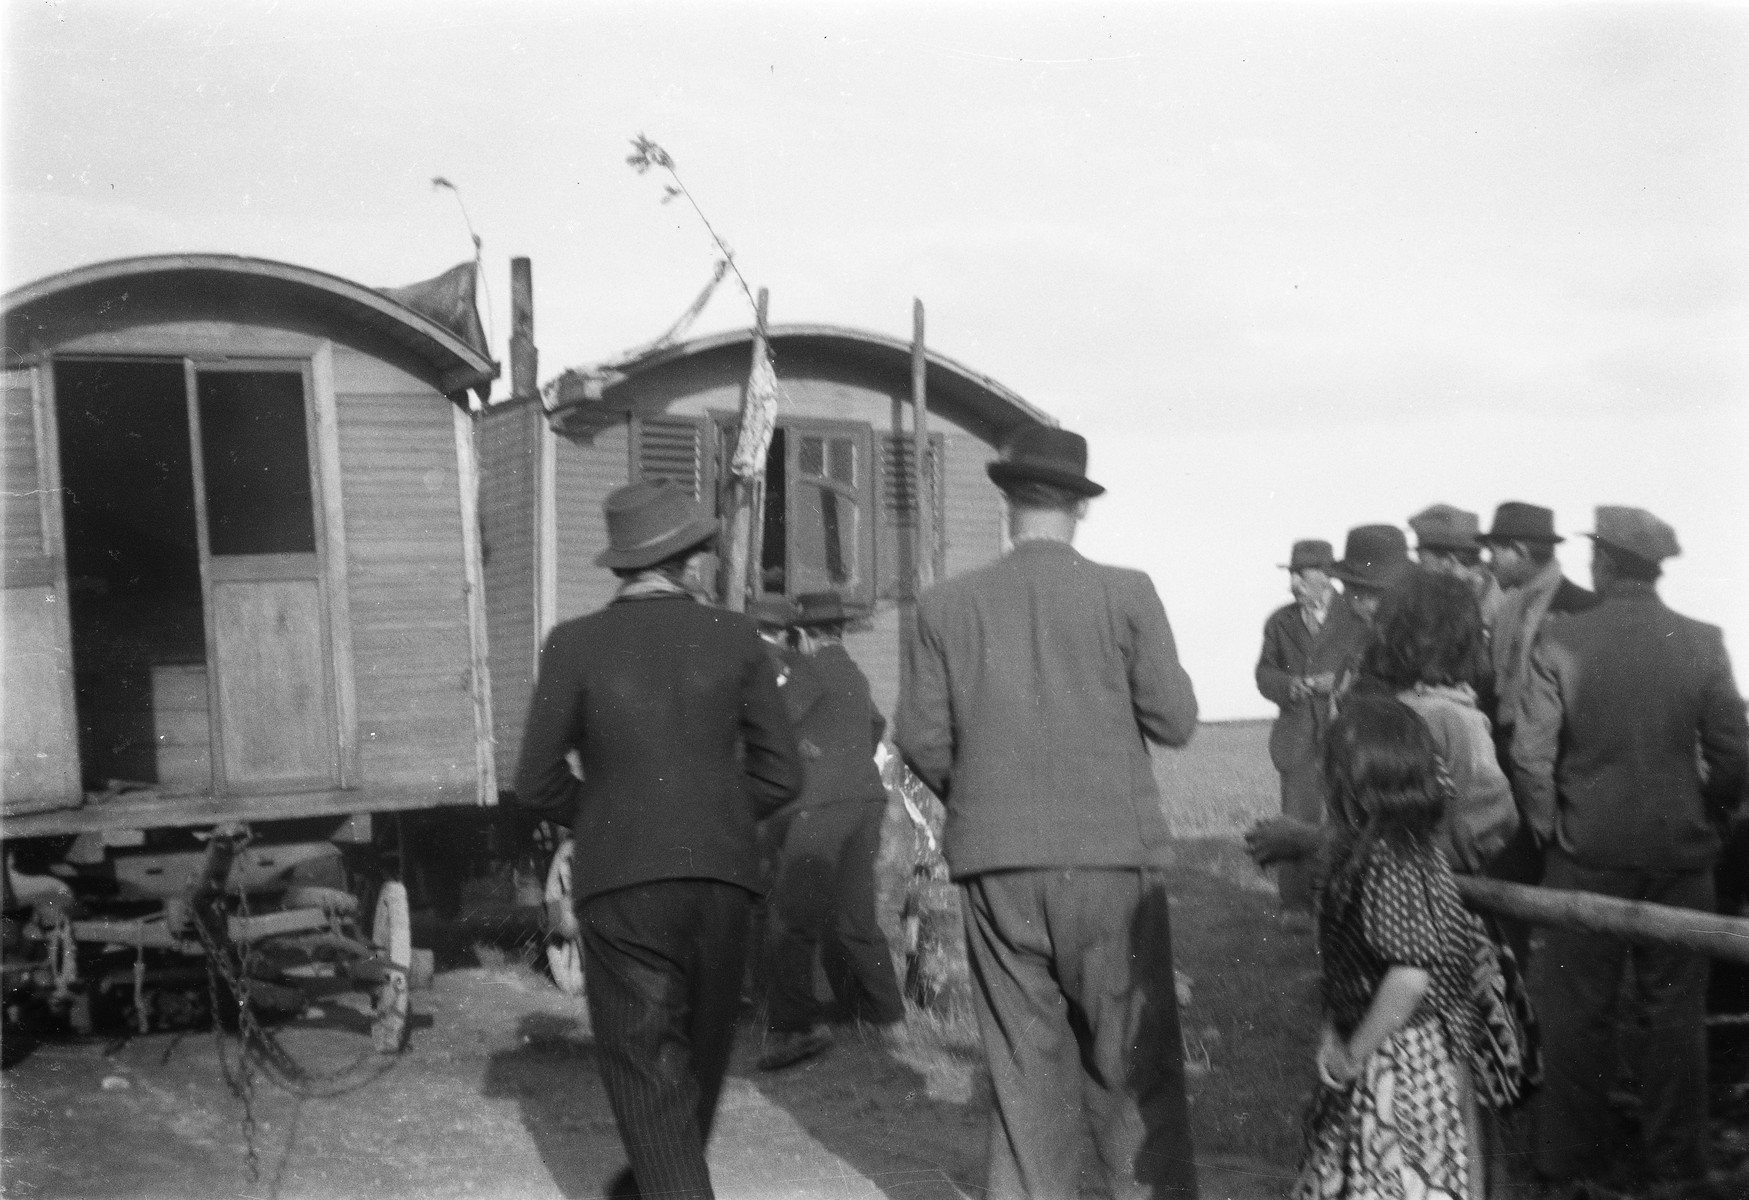 A group of Roma (Gypsies) gather around two caravans (possibly part of a celebration).